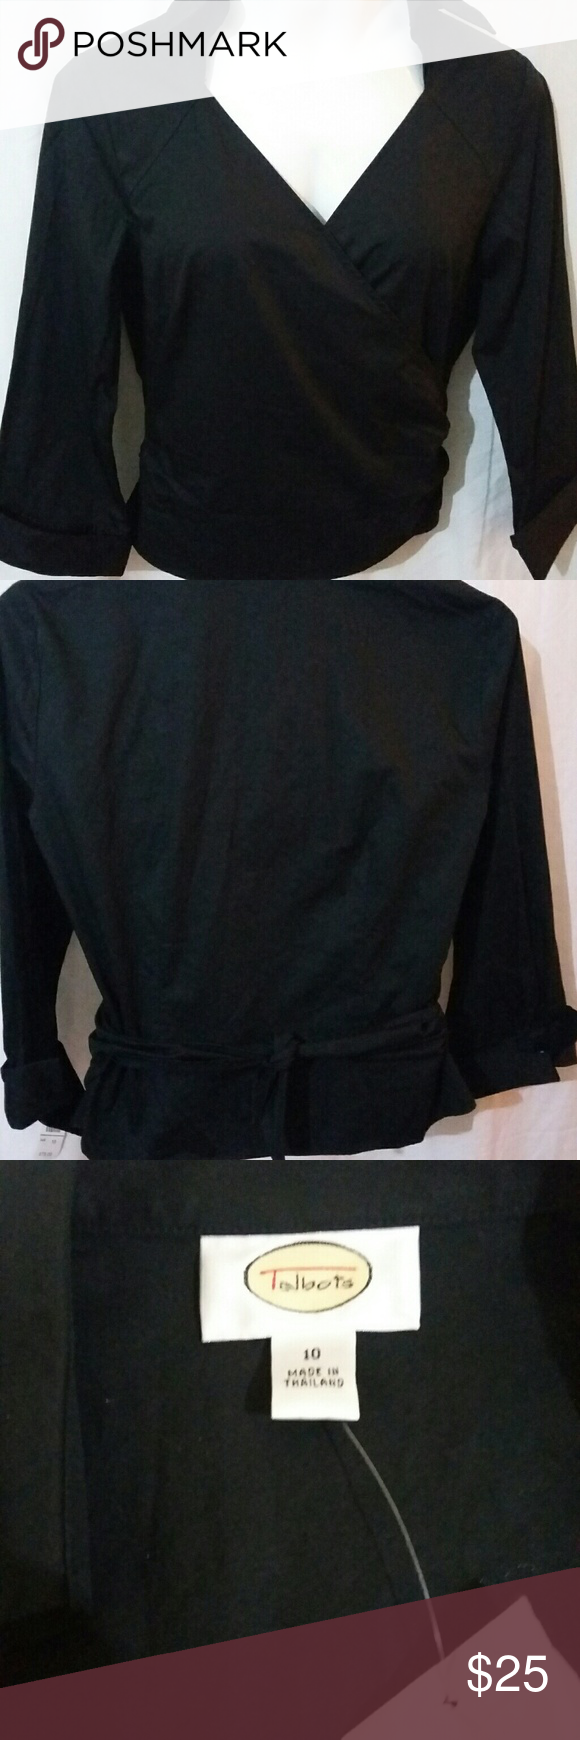 "Talbots Black Wrap Top NWT Cute Top  100 % cotton L 21"" B 38"" Sleeve 19"" Circumference on bottom 38"" Talbots Tops Blouses"